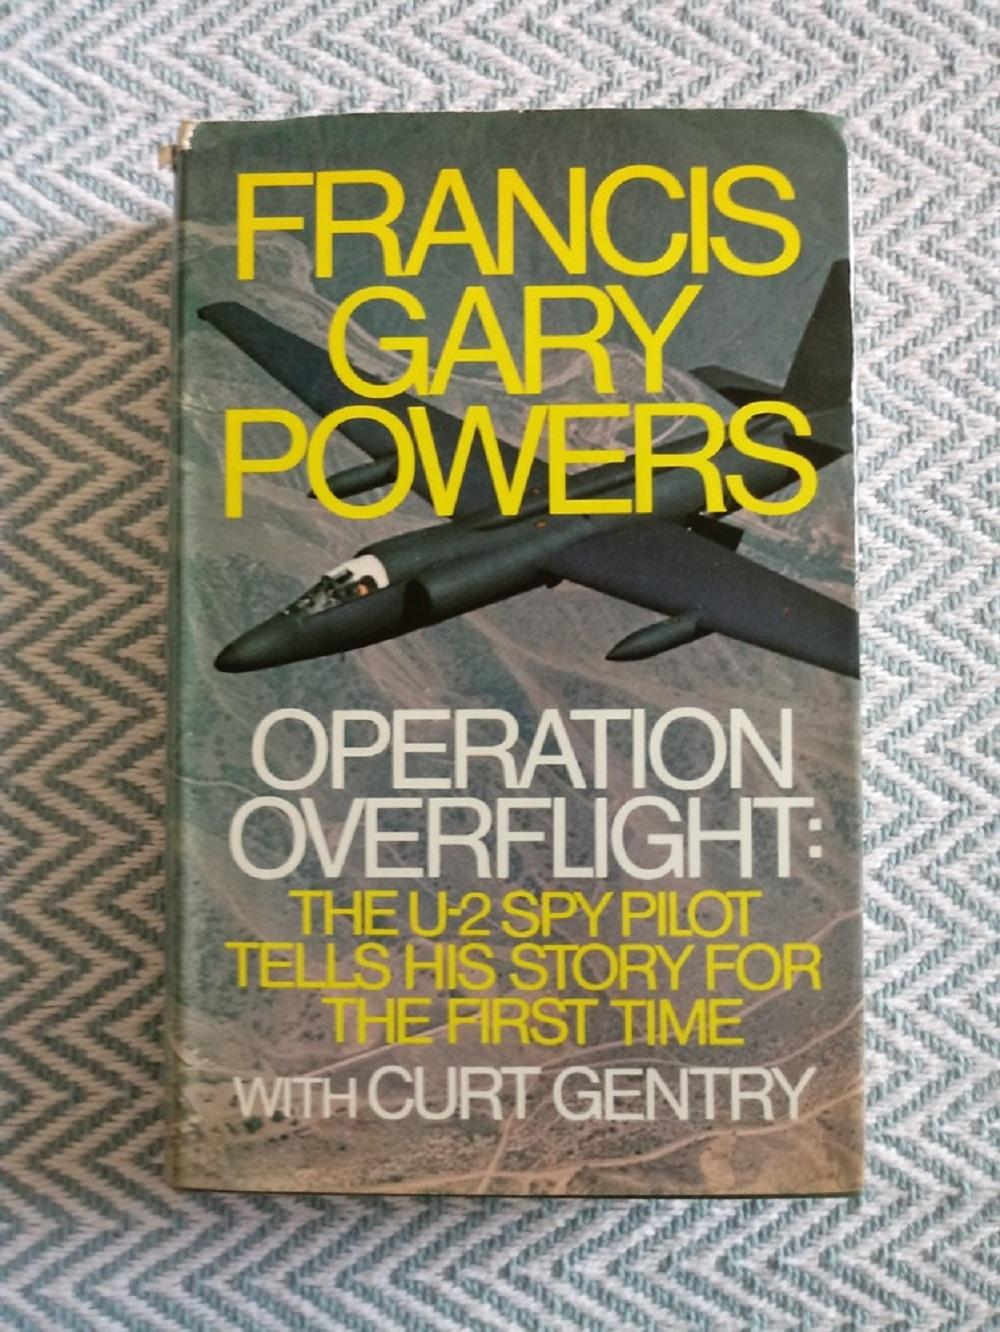 Operation Overflight The U 2 Pilot tells His Story For the First Time by Francis Gary Powers